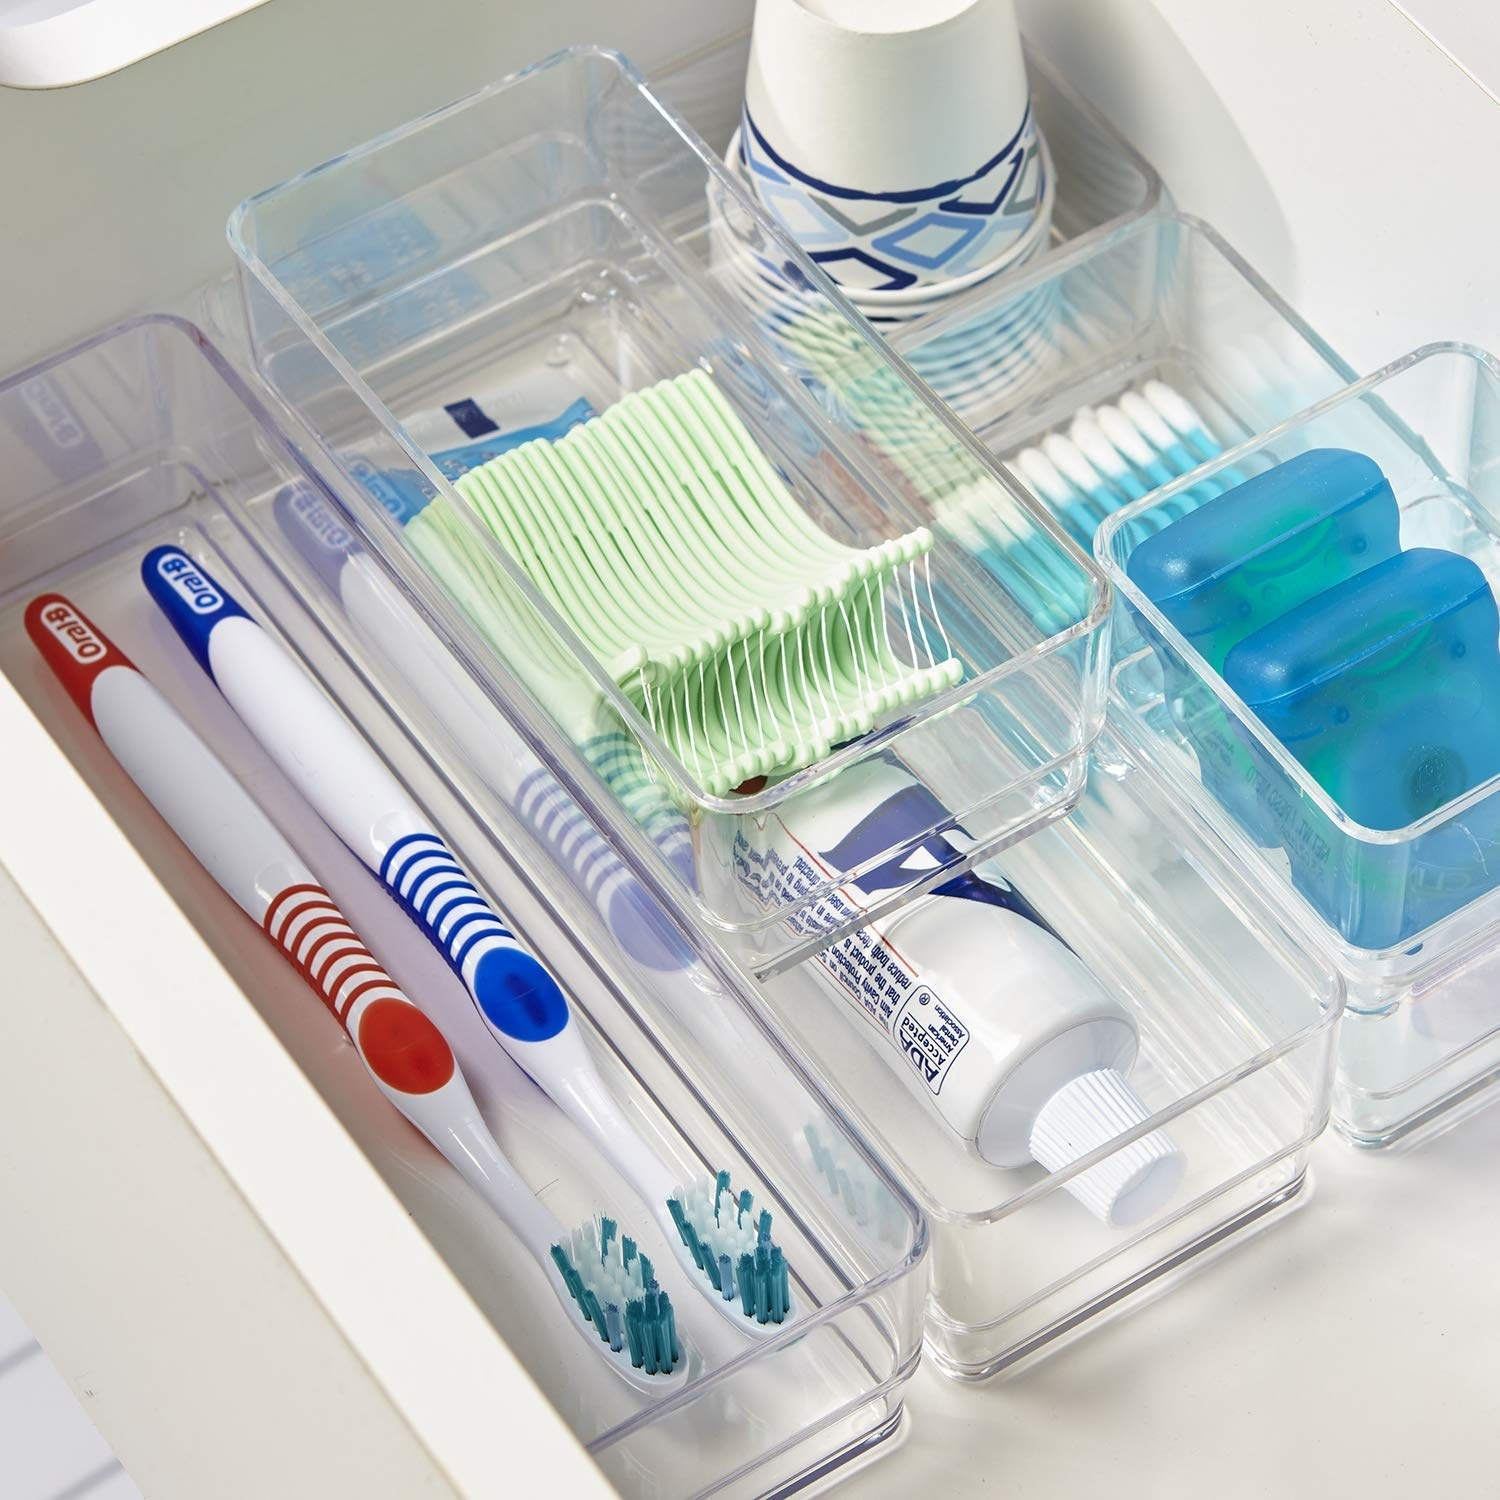 Toothbrushes, toothpaste, floss, cotton swabs, and more stored neatly in the containers in a drawer